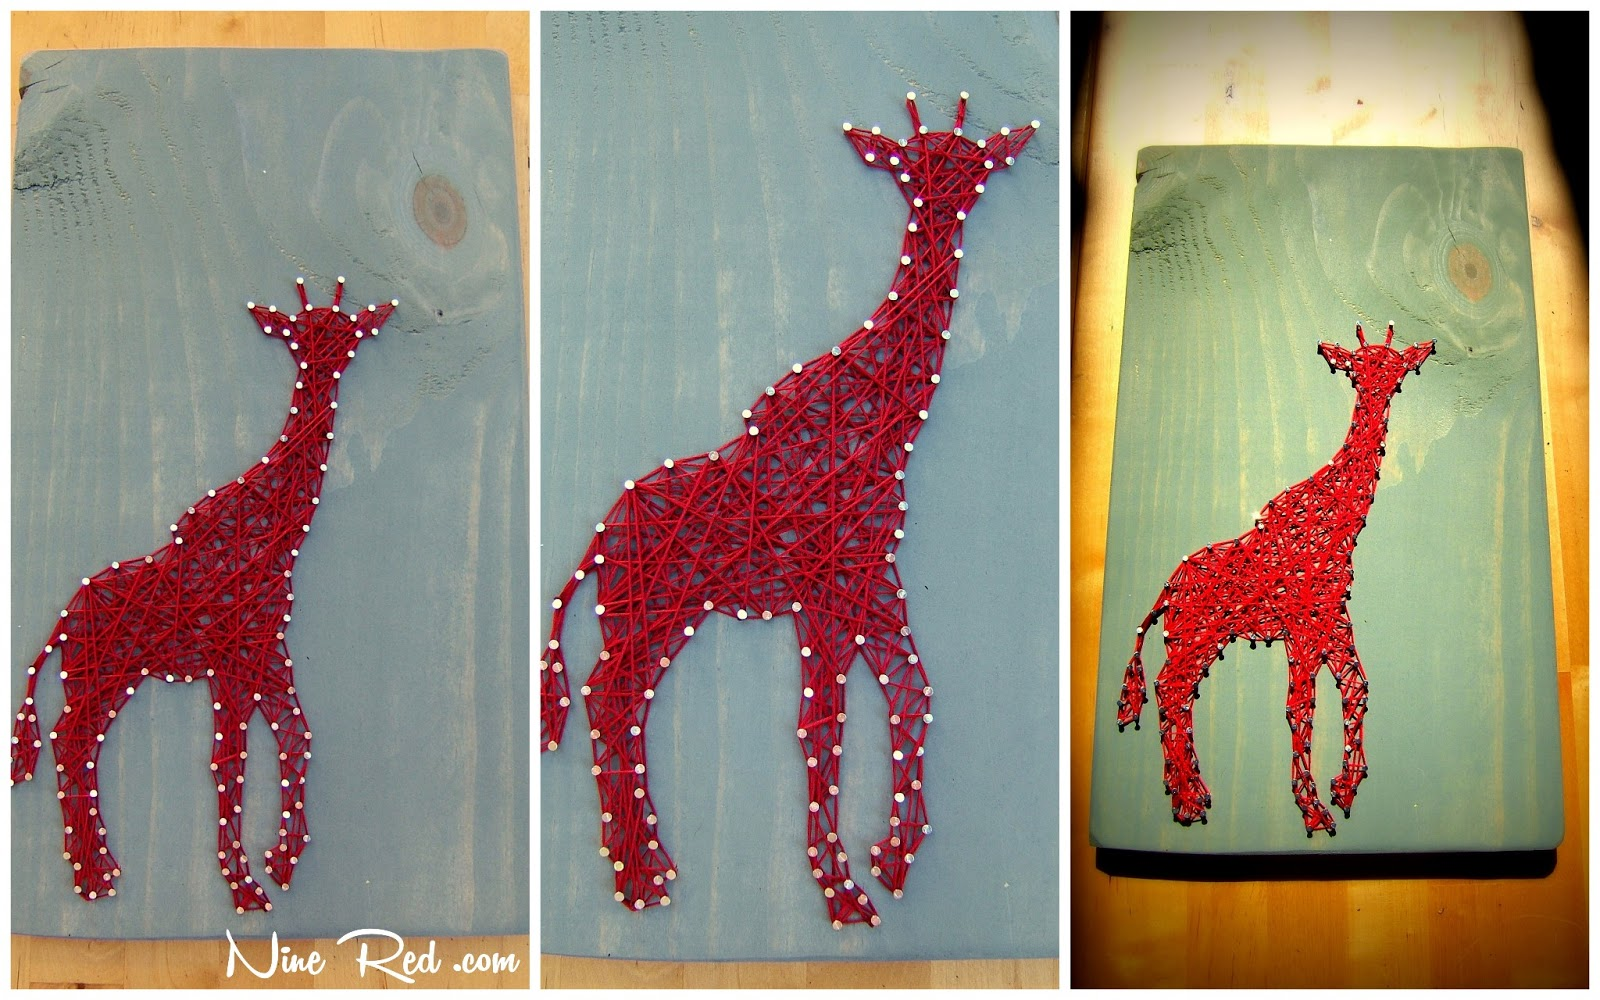 giraffe string art tablet. Black Bedroom Furniture Sets. Home Design Ideas